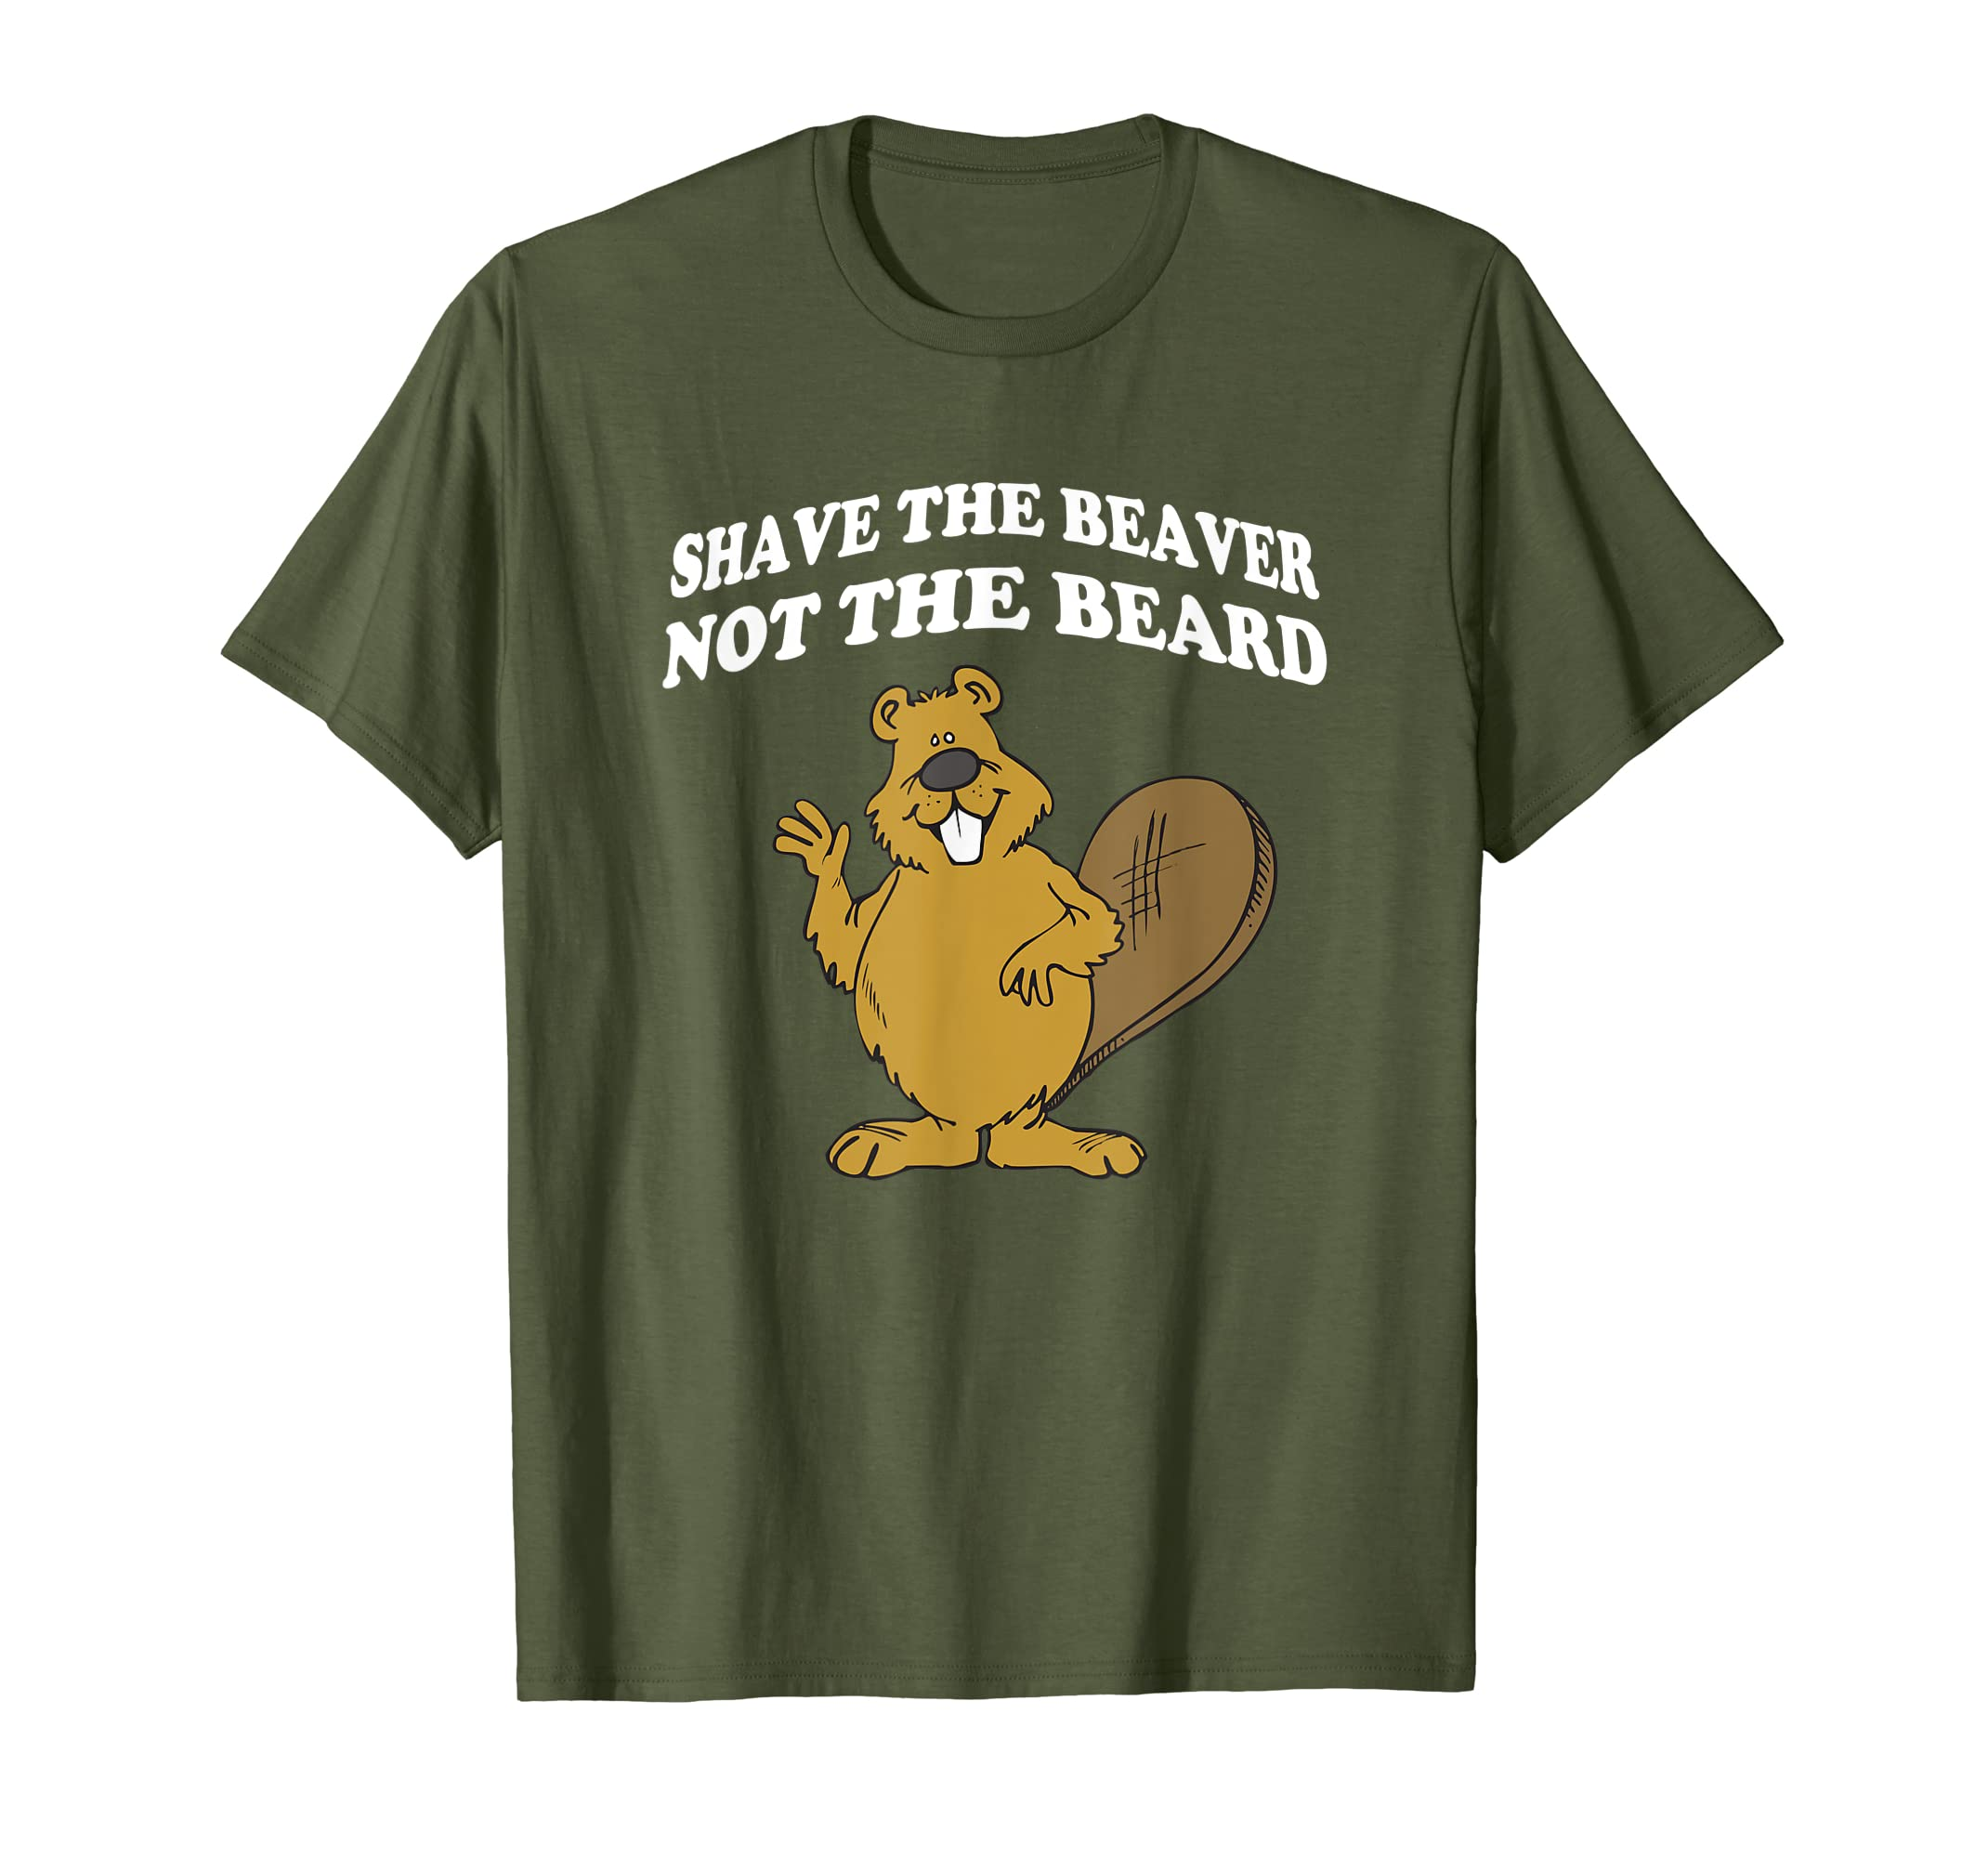 db1eb922 Amazon.com: Shave The Beaver Not The Beard T Shirt - Shave Your Beaver:  Clothing